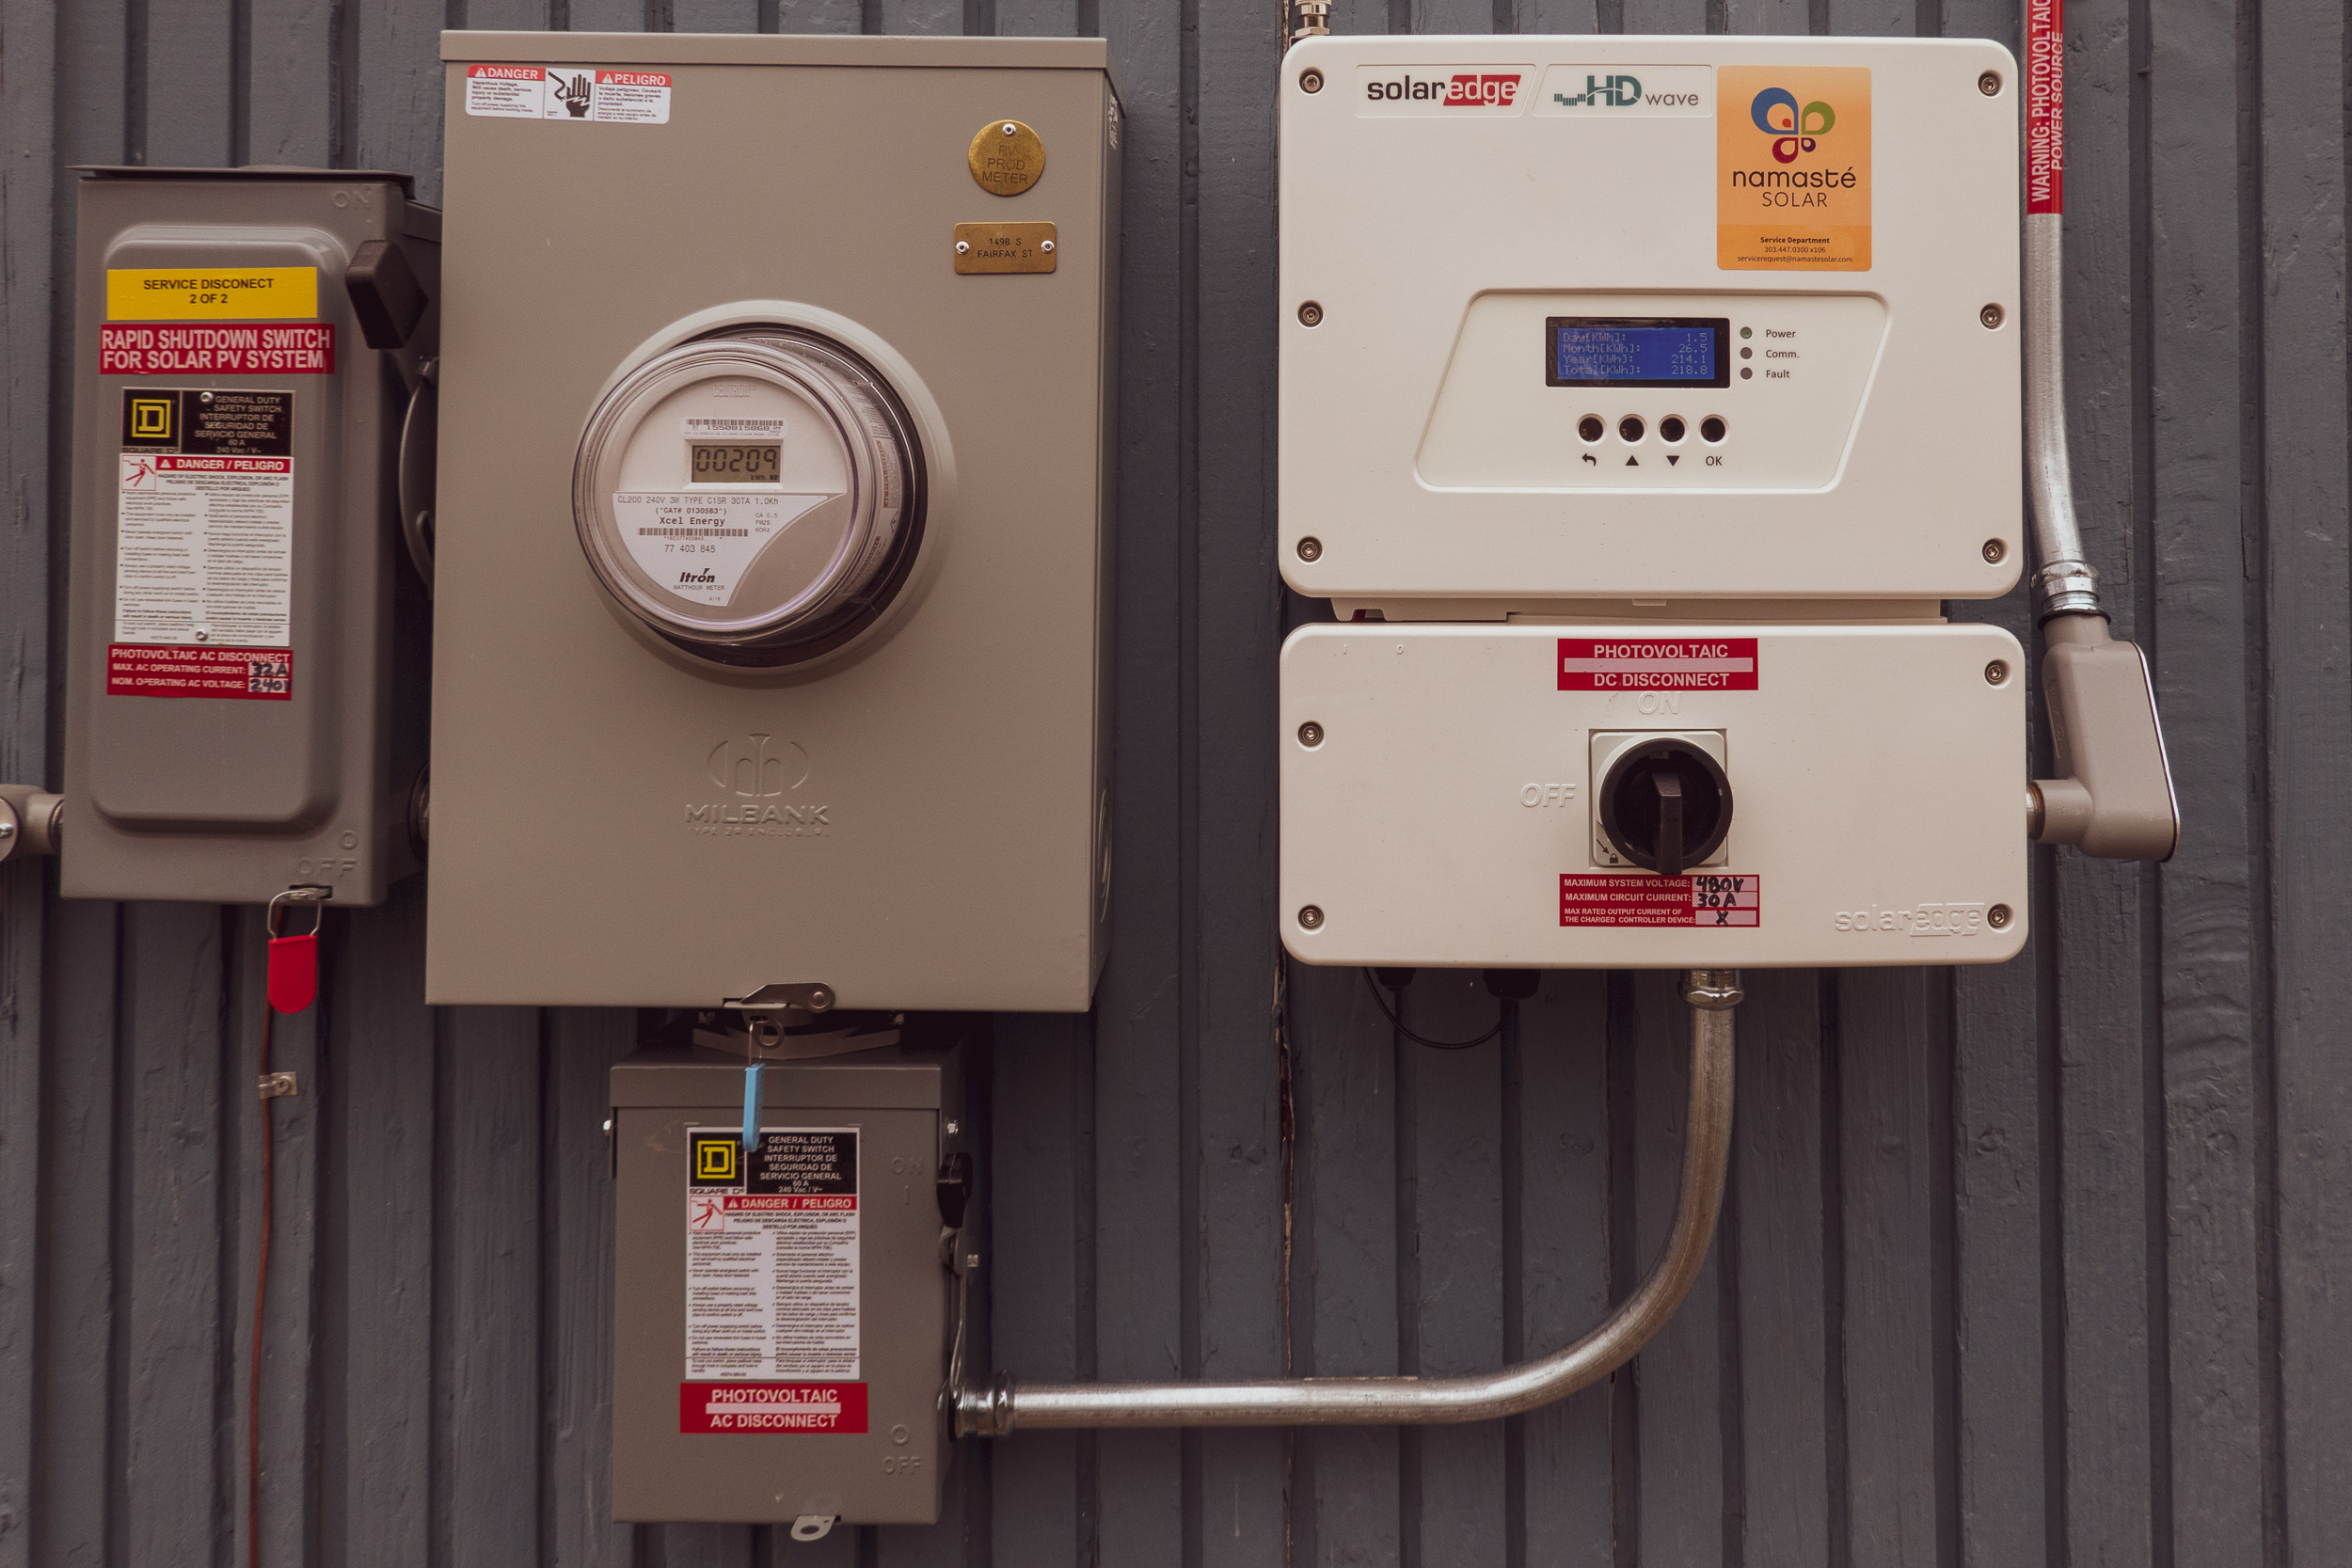 Shutoff, Net Meter, and the Inverter will all be added adjacent to your regular meter.